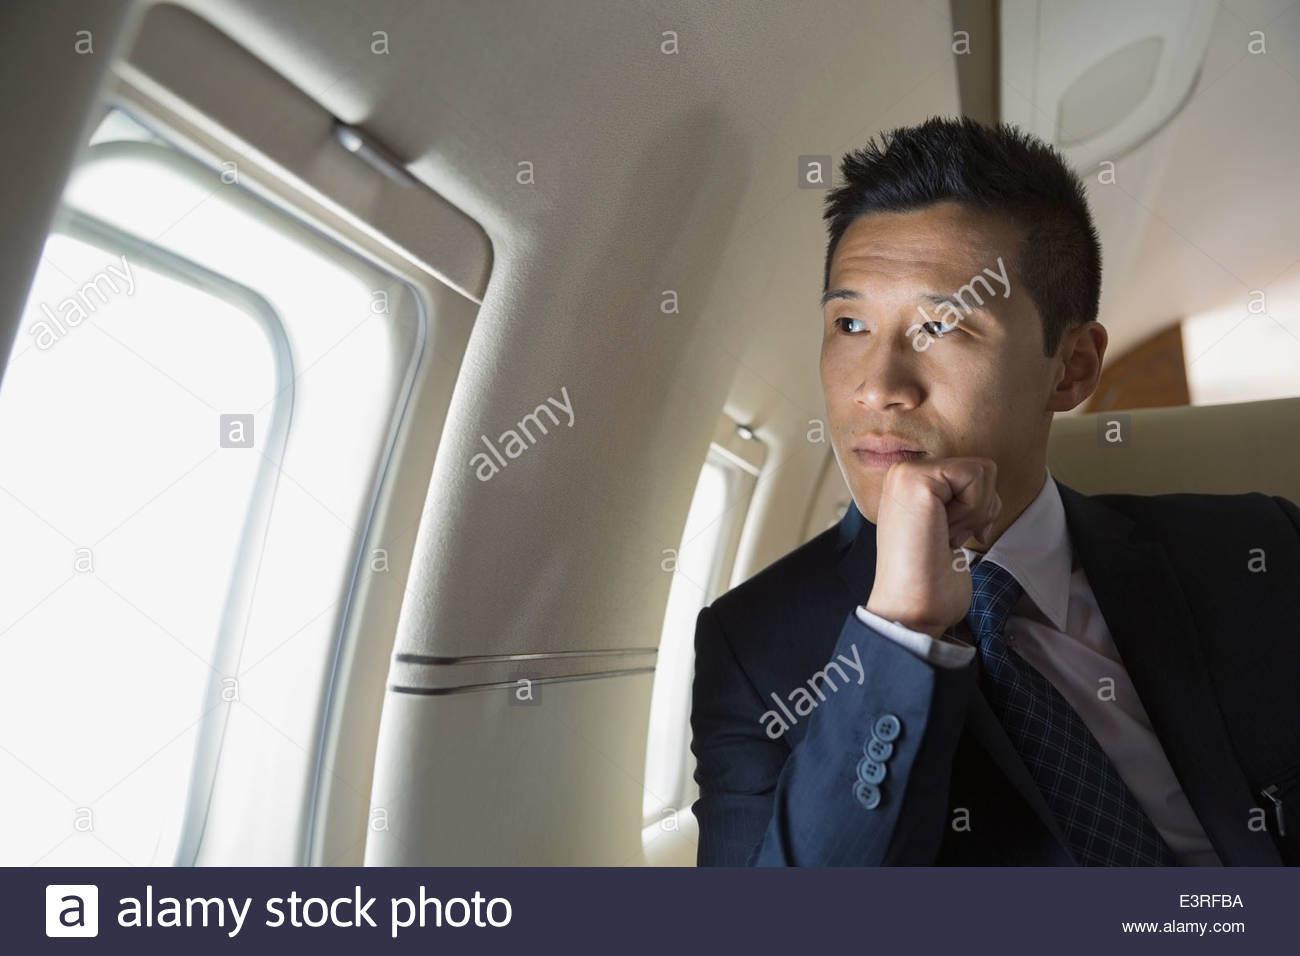 Pensive businessman looking at window of corporate jet - Stock Image